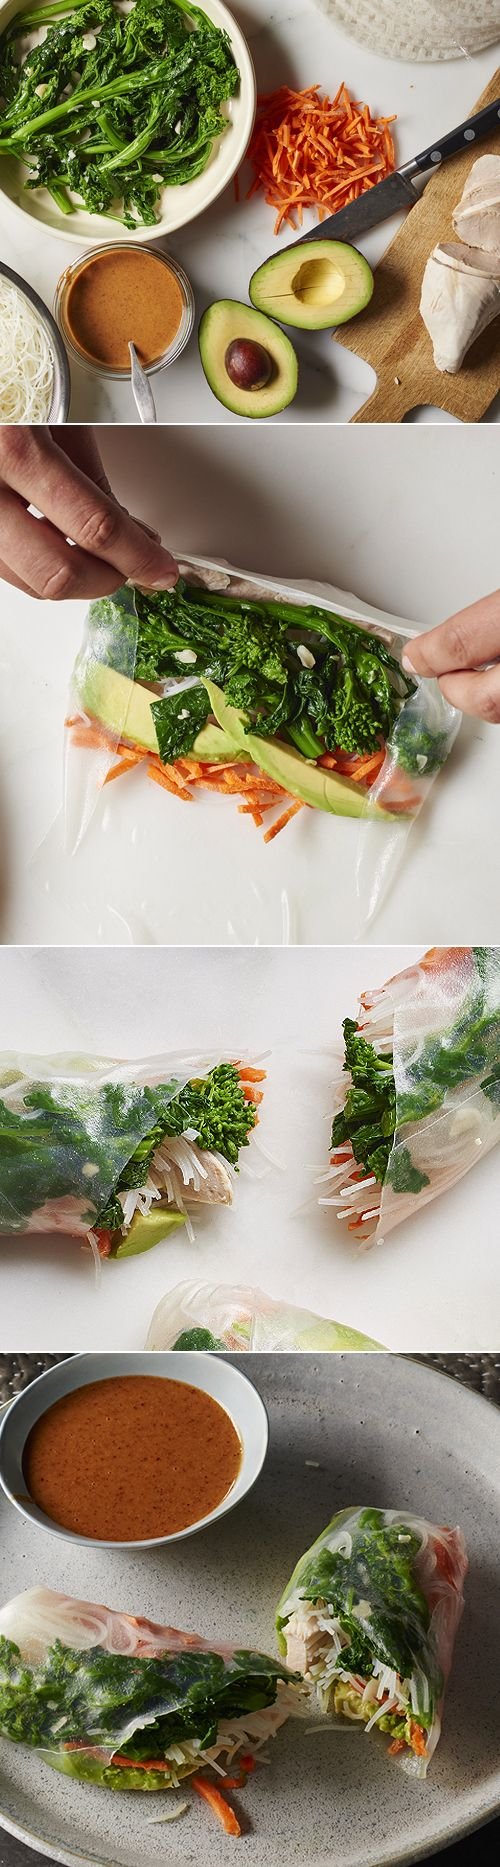 Broccoli Rabe Summer Rolls with simply poached chicken breast, thin and crunchy julienned carrots, creamy avocado, and slippery rice vermicelli.